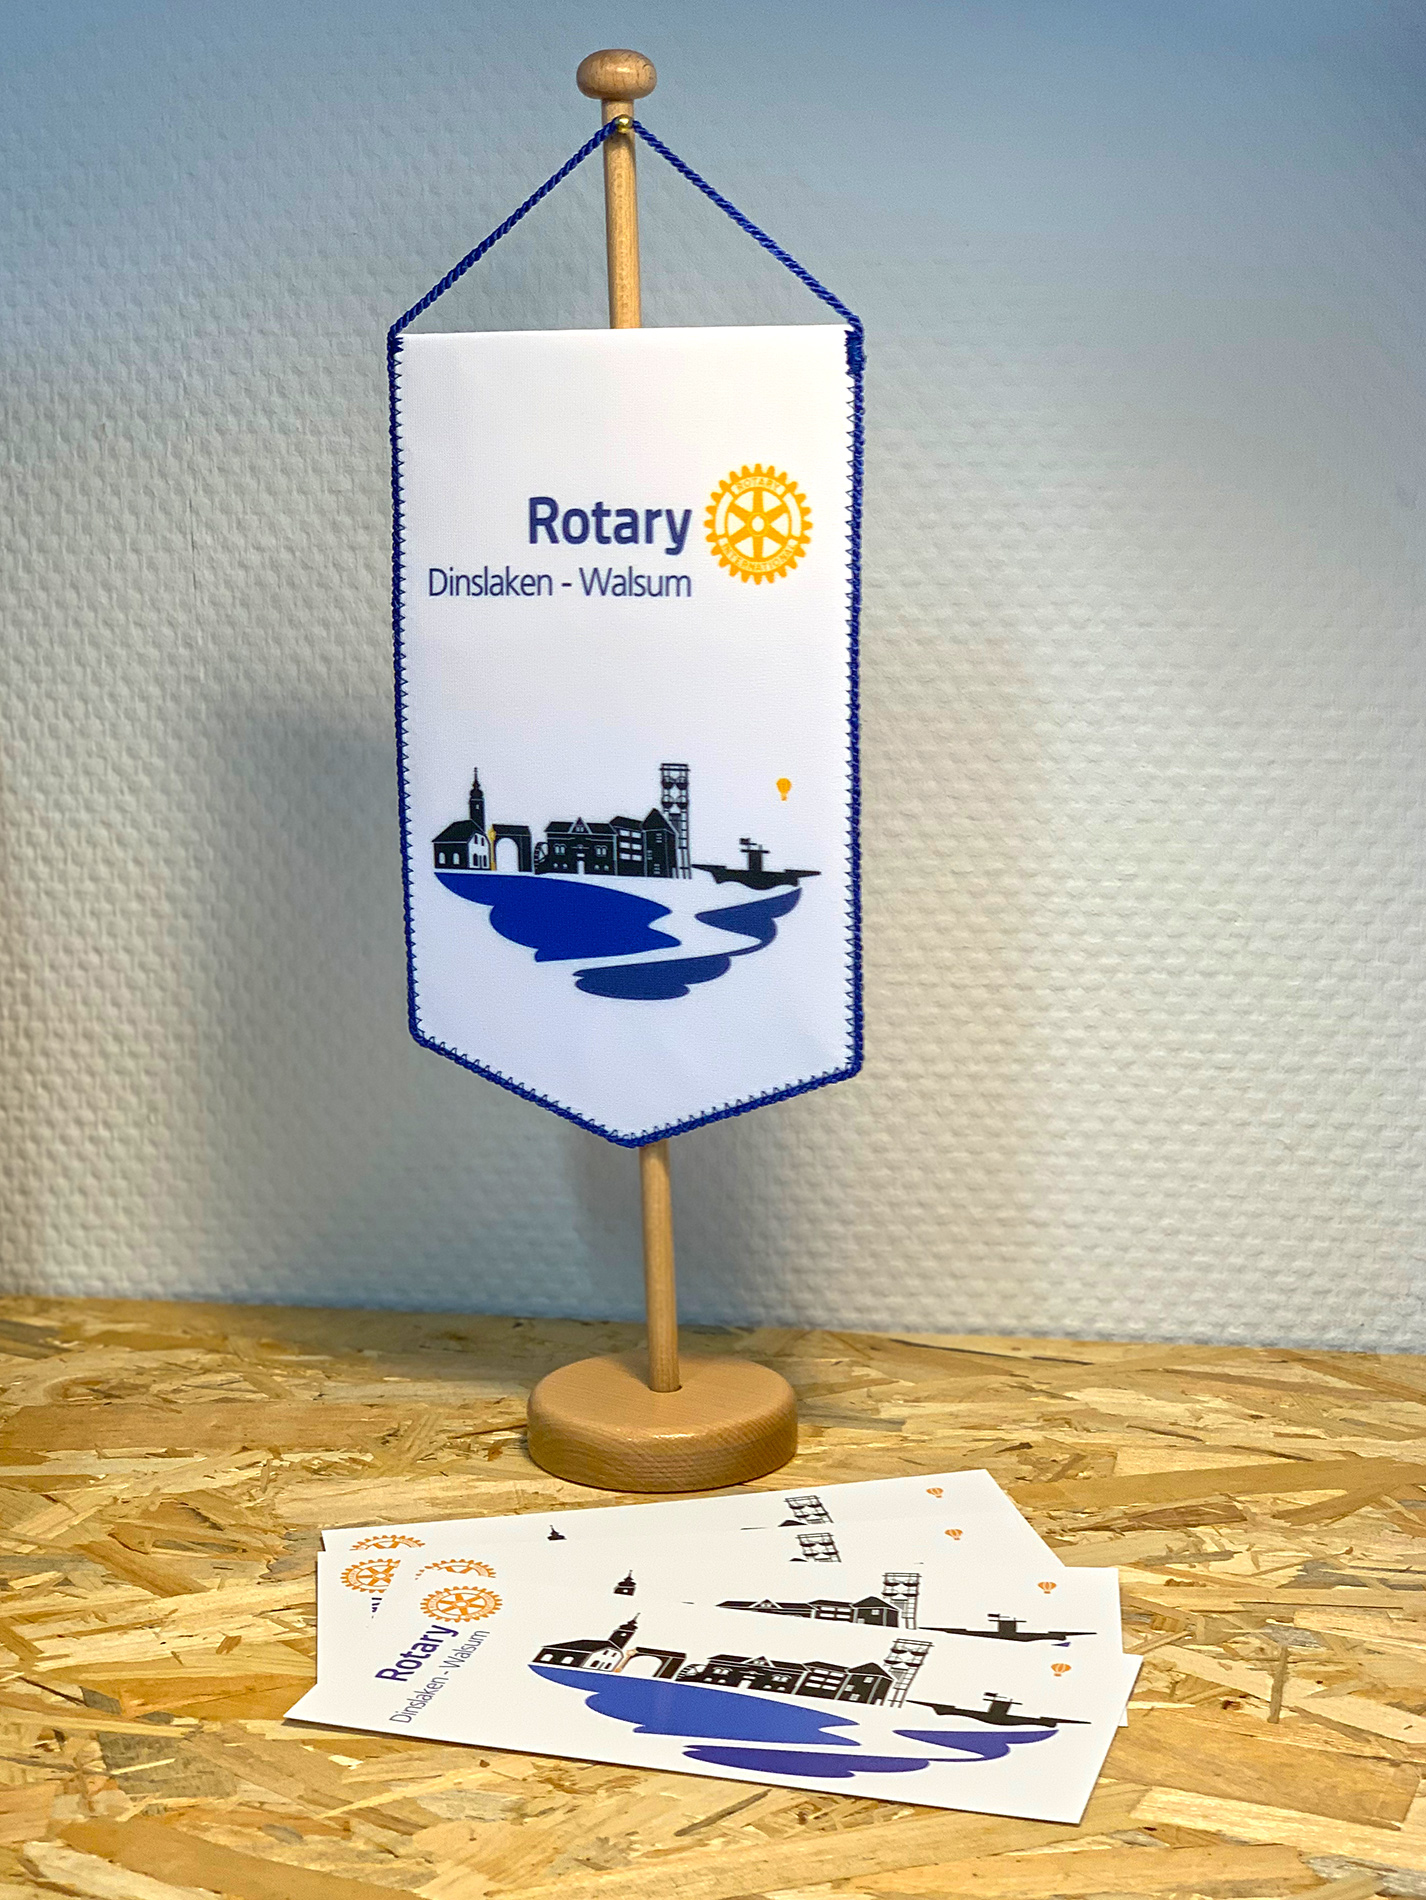 Rotary Club Dinslaken-Walsum